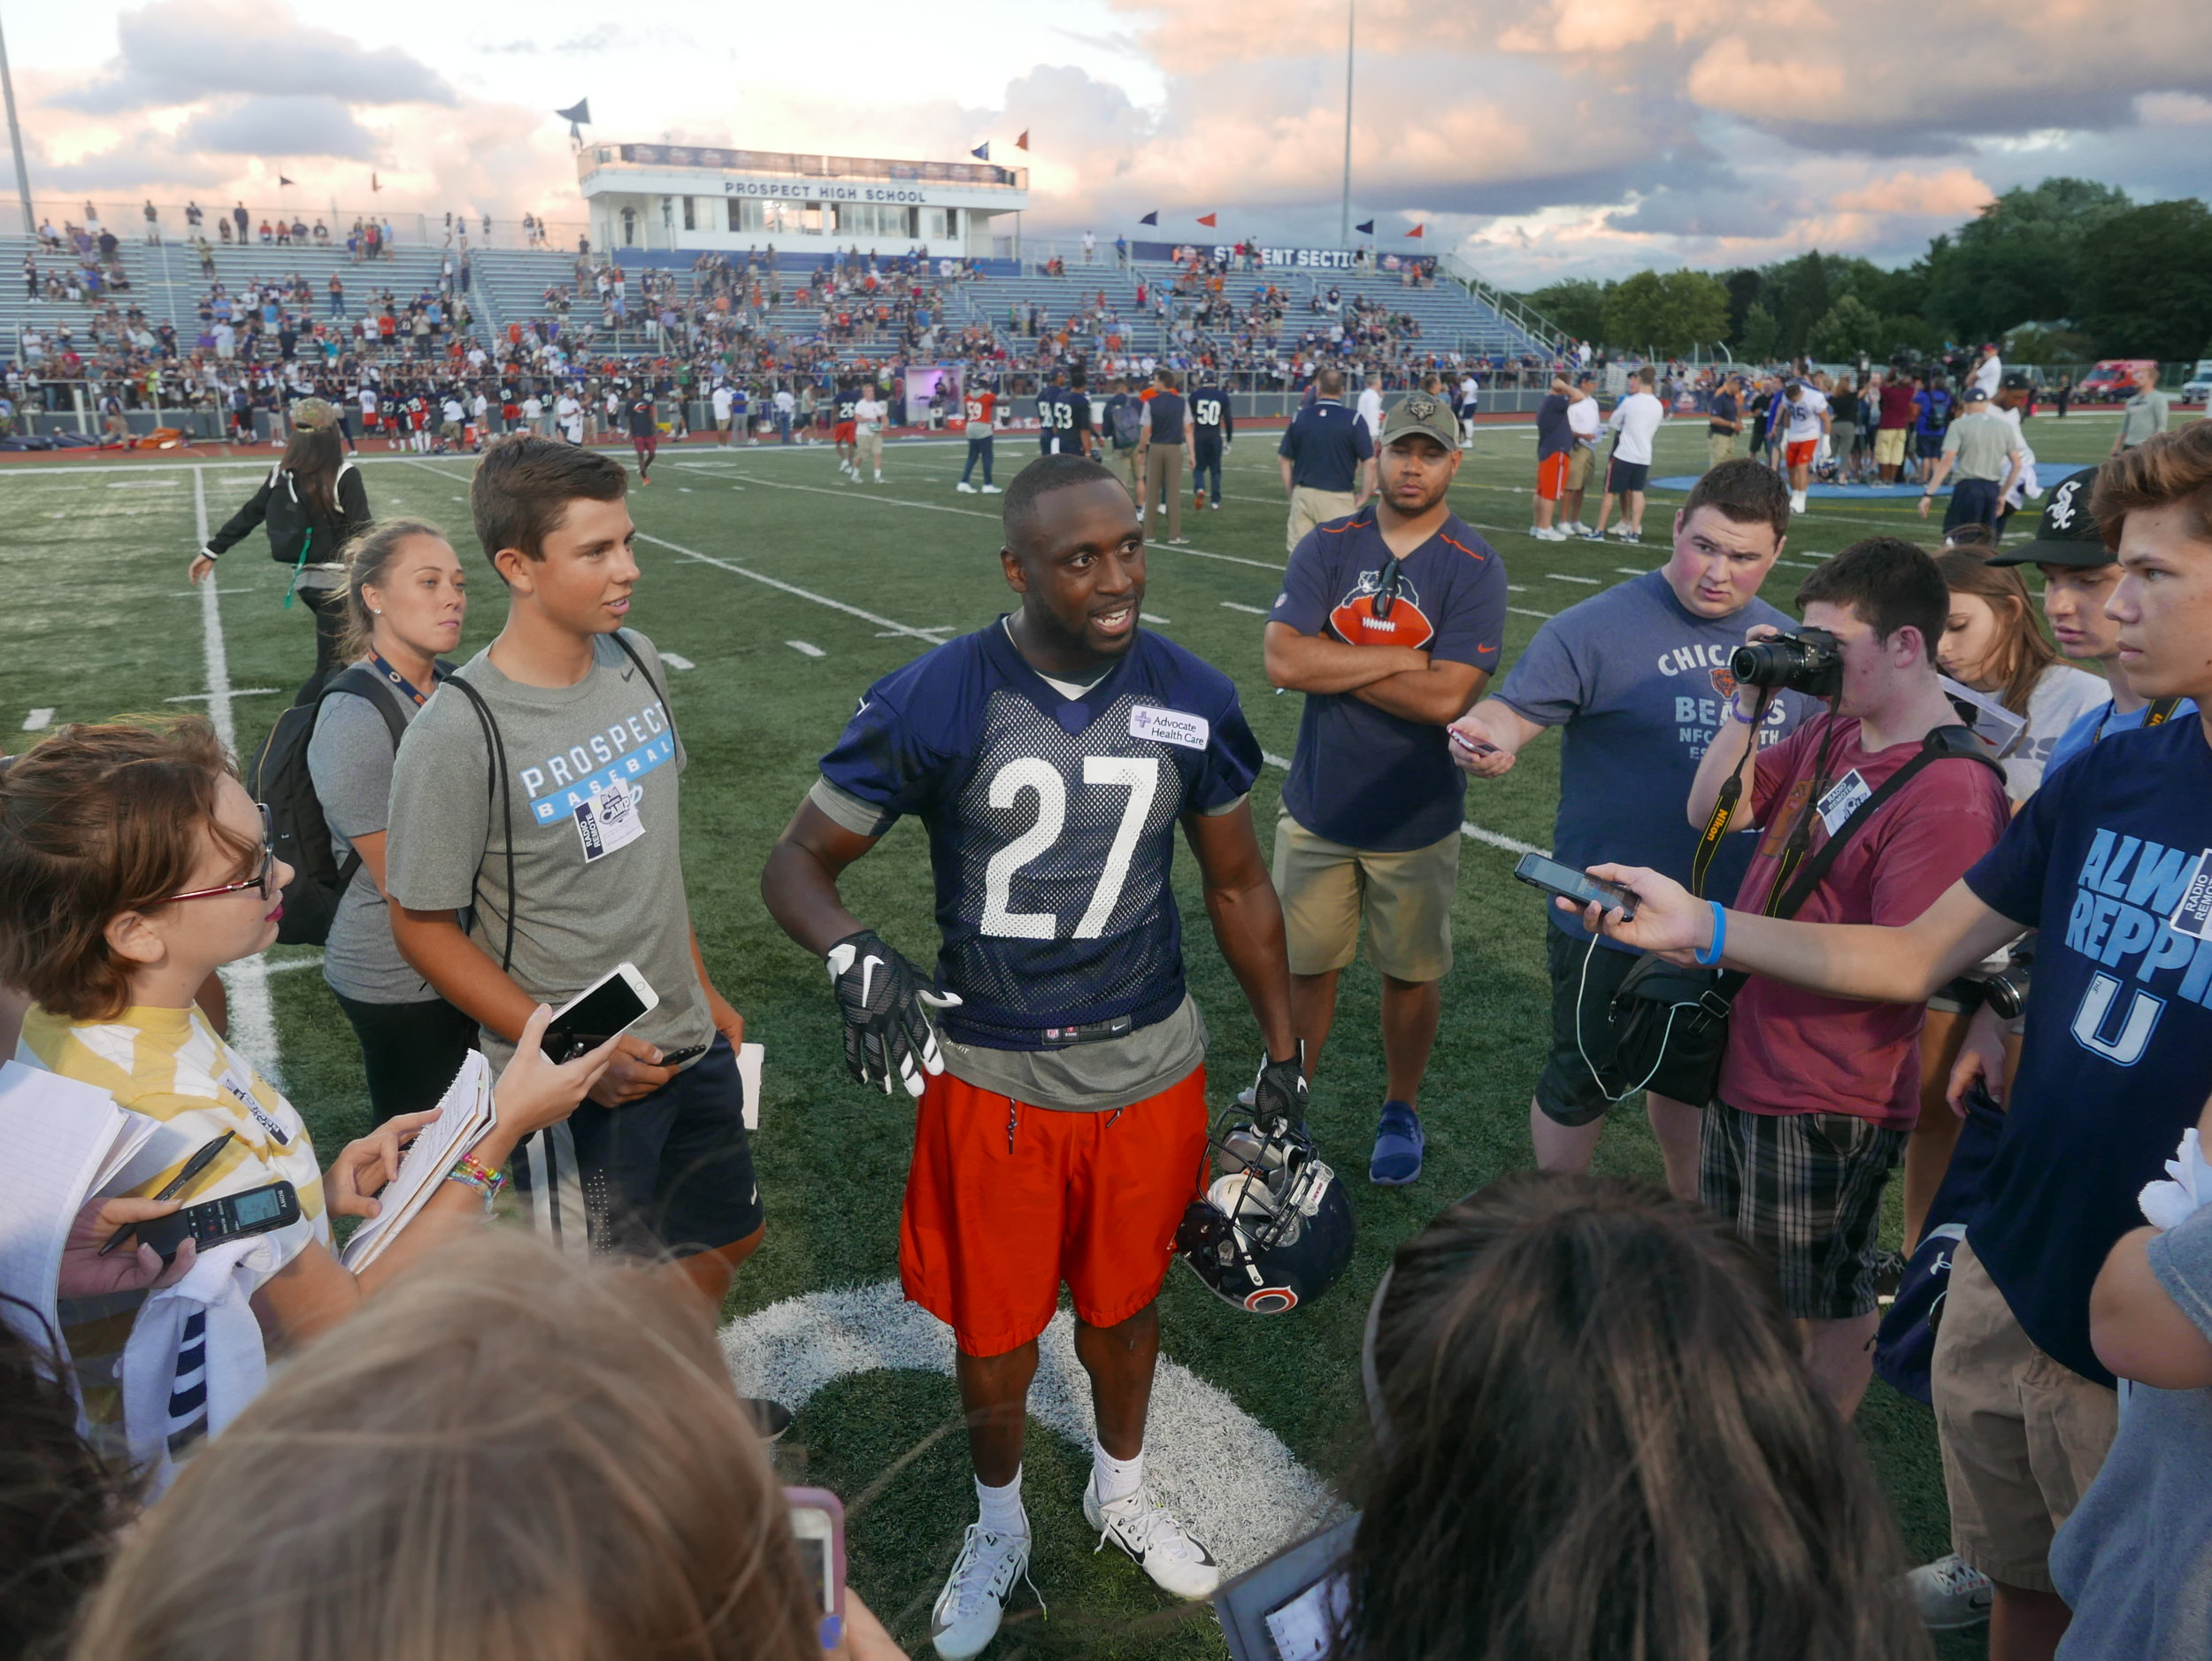 Student journalists from across District 214 gained press credentials to cover a Chicago Bears practice in August 2017 at Prospect High School. The students interviewed Sherrick McManis of the Bears following the practice.